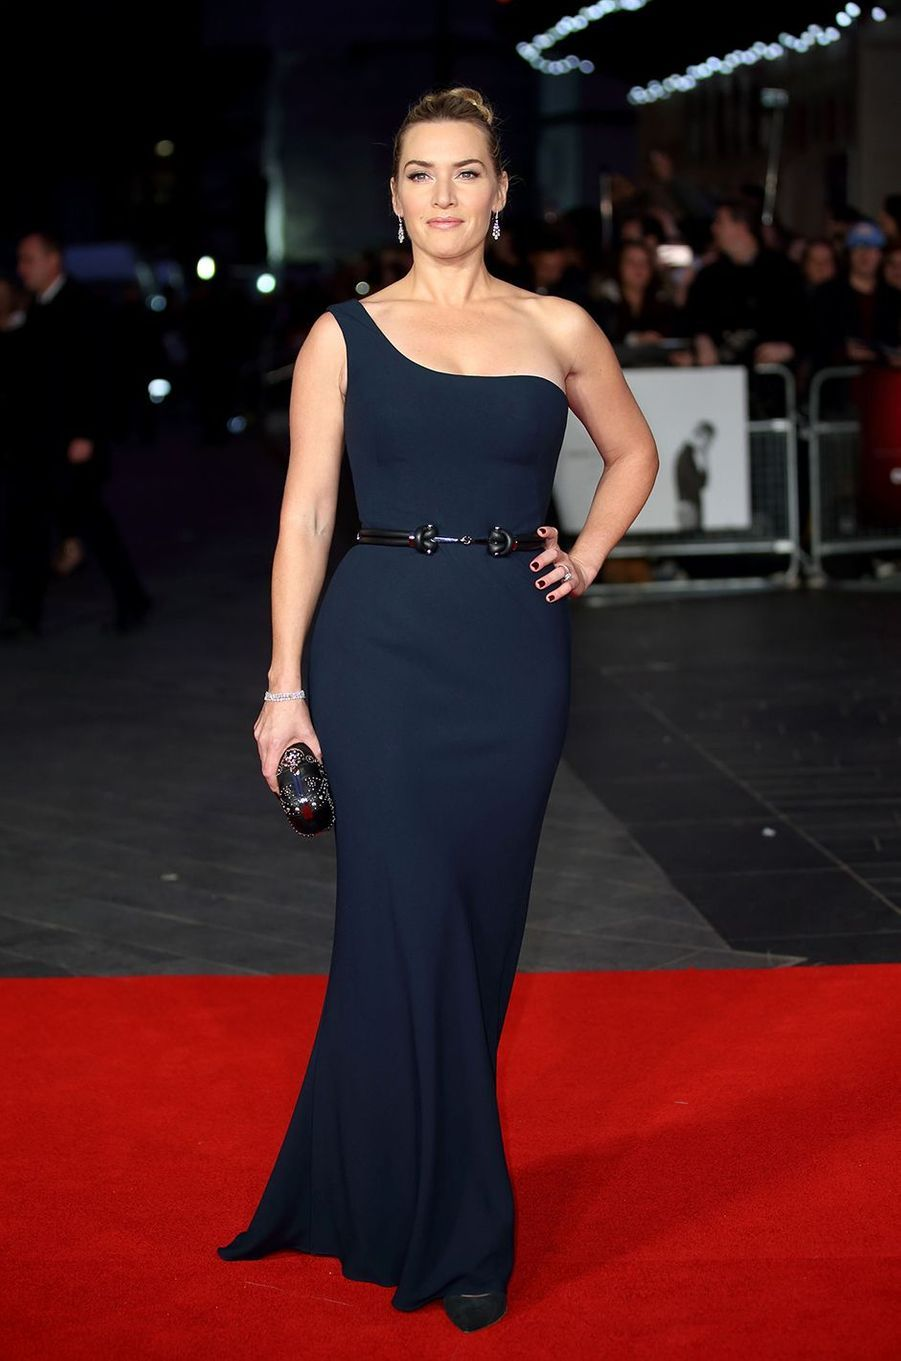 Kate Winslet à la projection du film «Steve Jobs» lors du BFI London Film Festival en octobre 2015